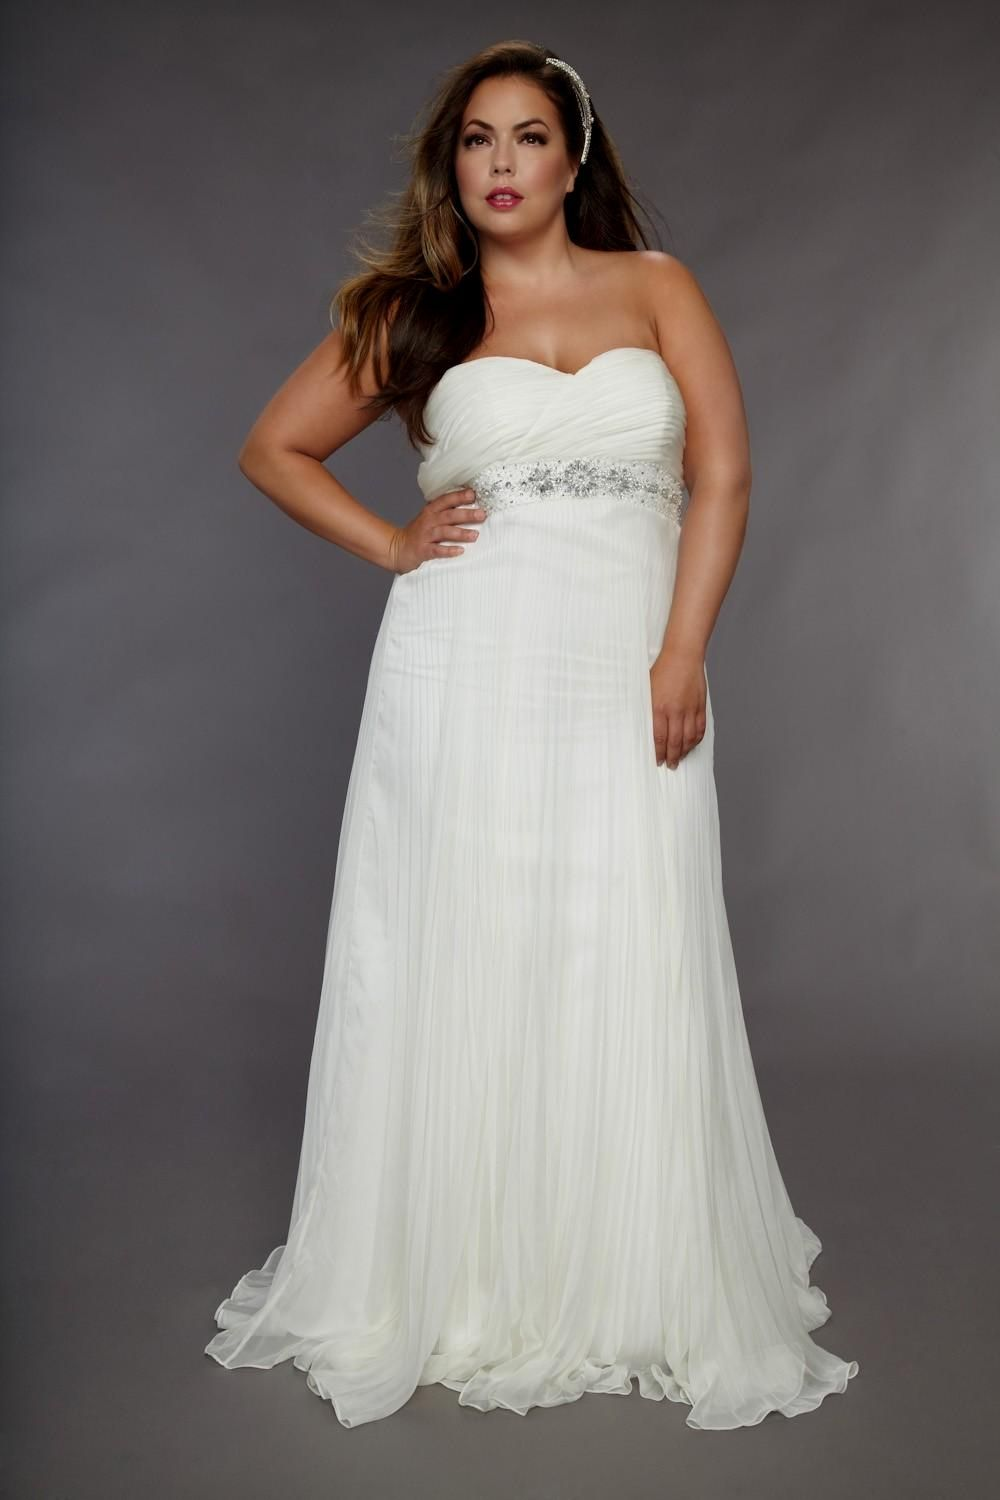 Plus Size Maternity Wedding Dresses - Dressy Dresses for Weddings ...